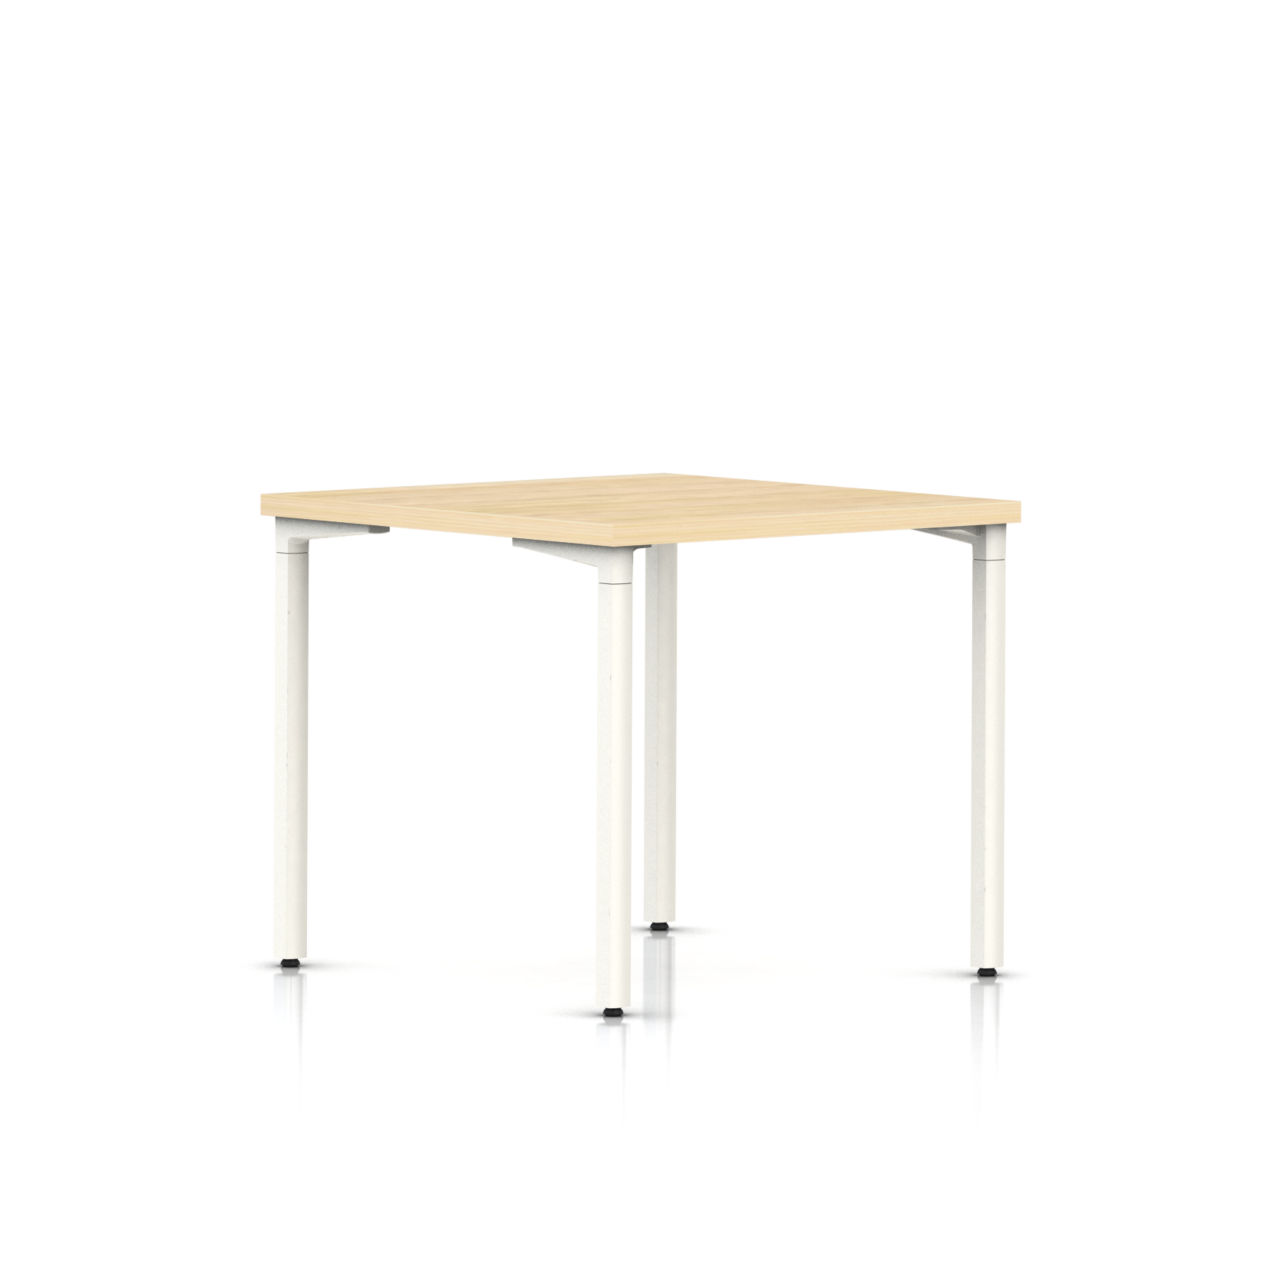 Everywhere Square Table in Clear on Ash 30 IN x 30 IN by Herman Miller